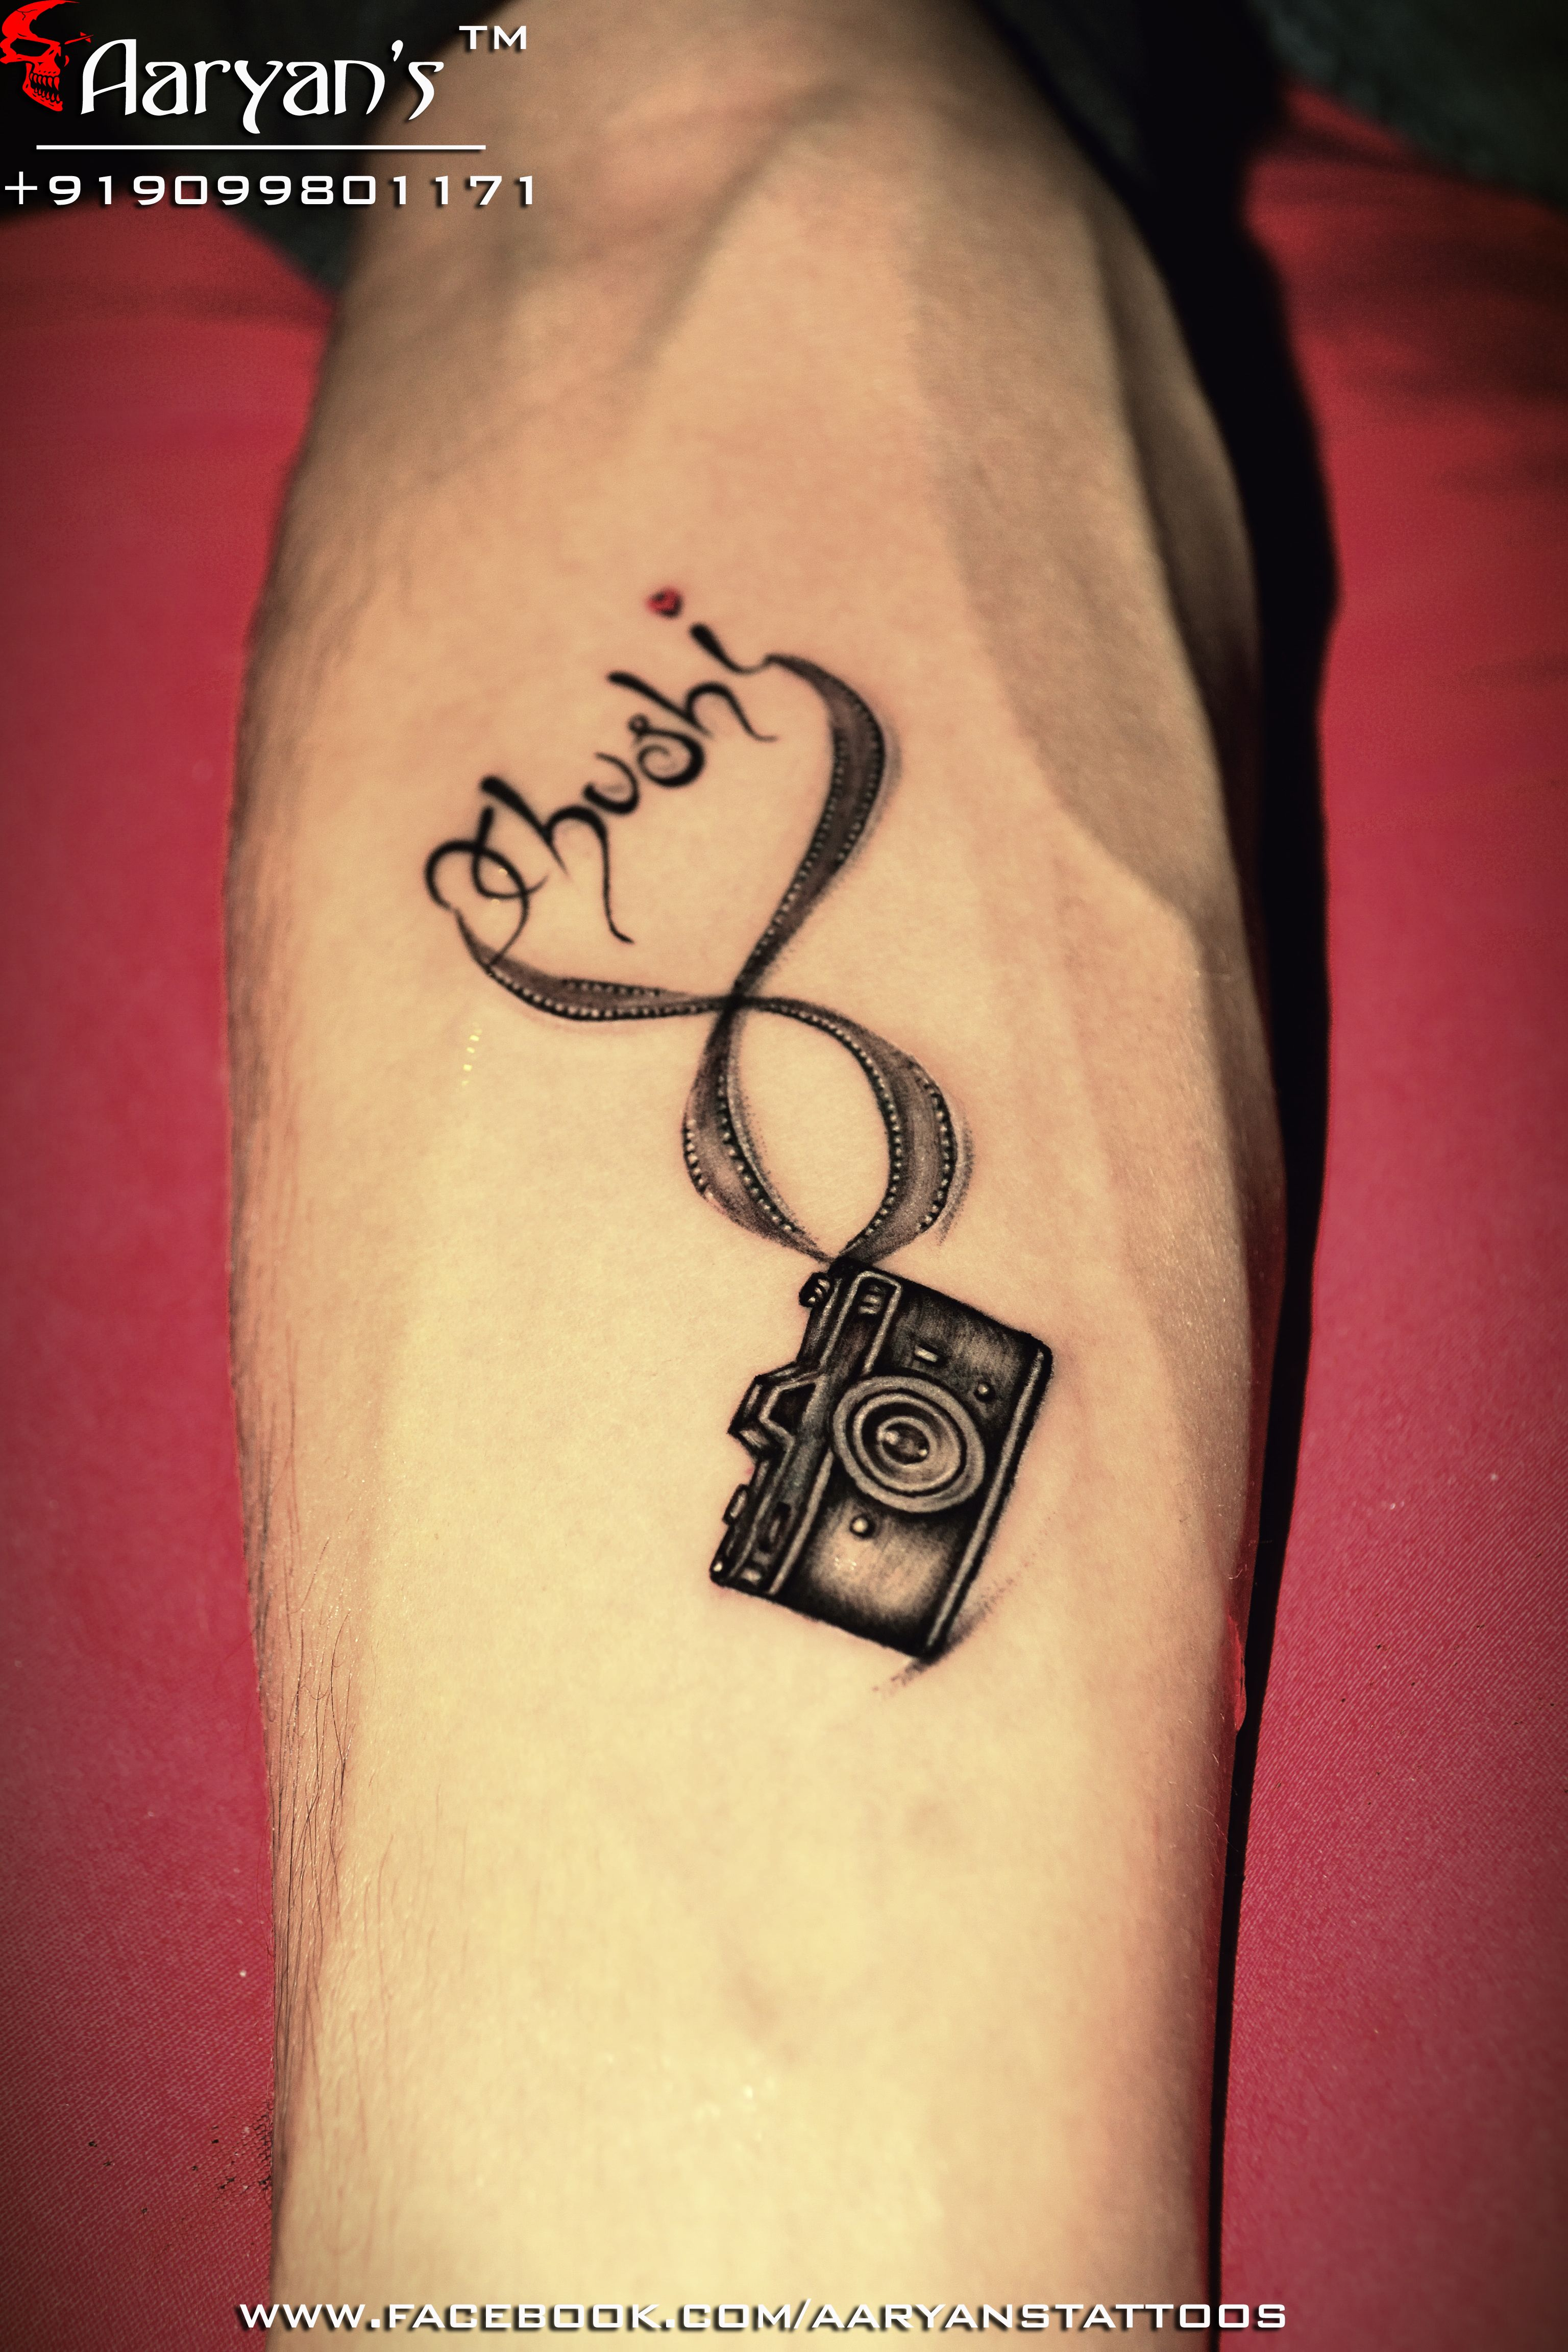 7ce4d16be Beautiful Small Camera and Infinity Love's Name Concept and Tattoo Design  by Aaryan Tattooist..!! Stay connected: +919099801171